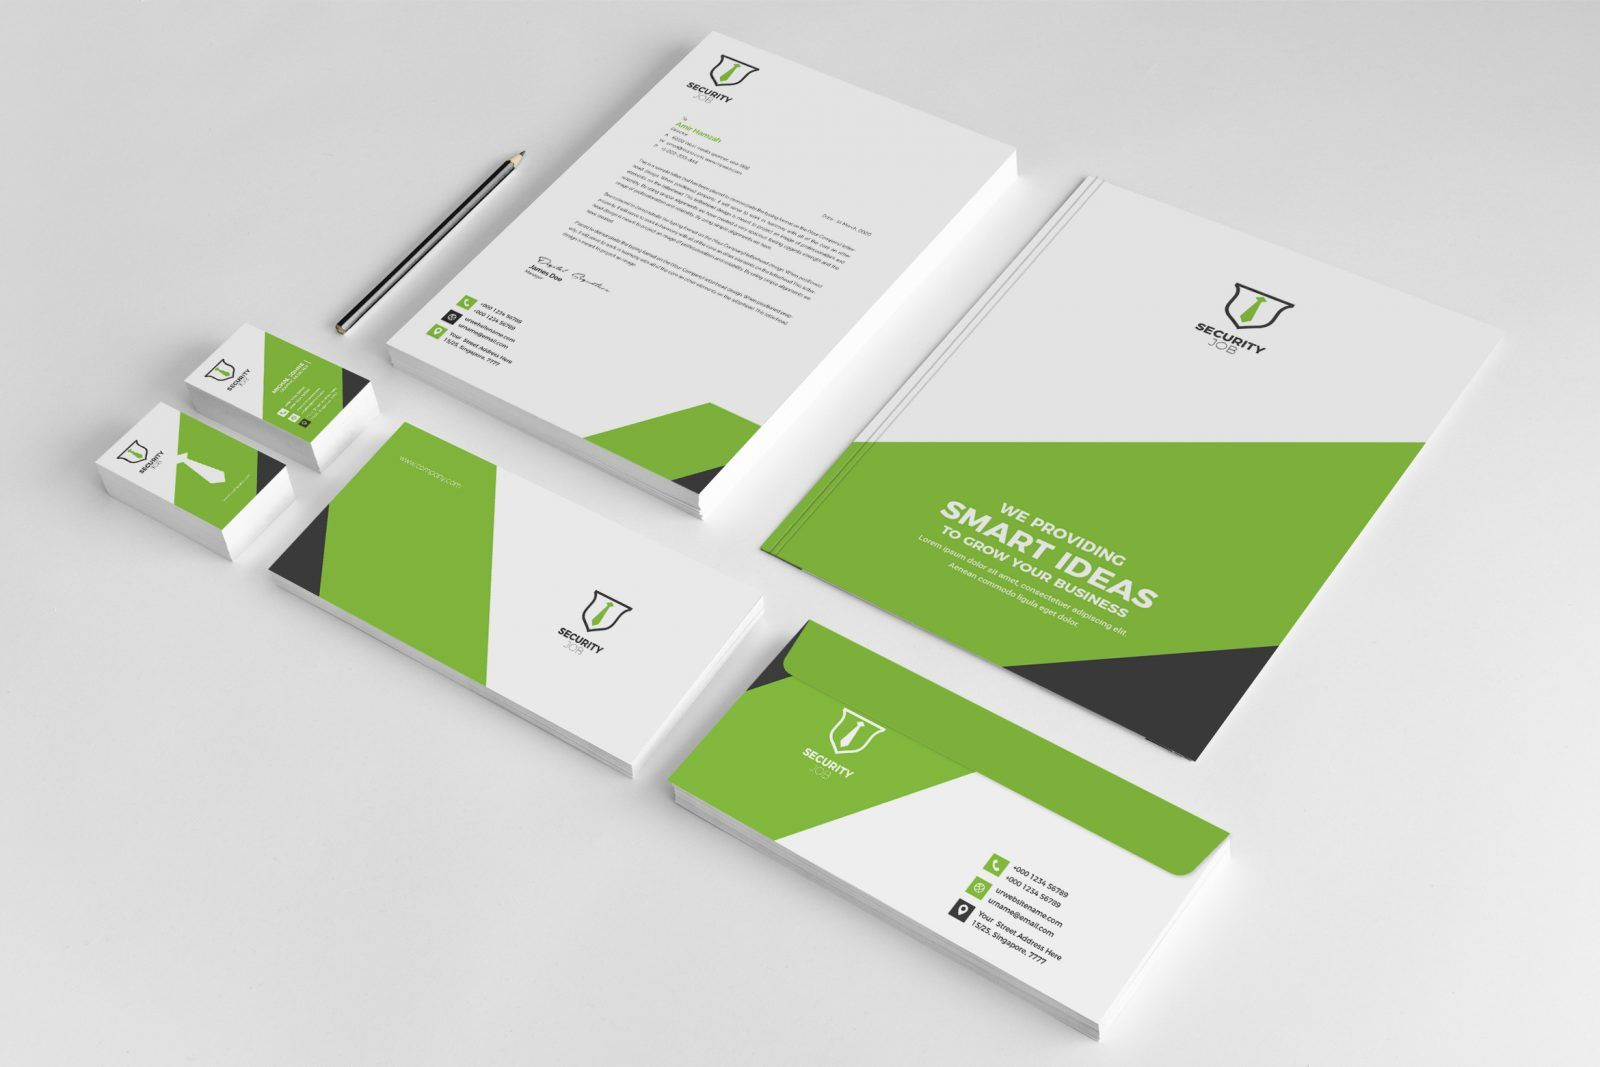 Security Company Creative Corporate Identity Template 001822 Template Catalog Corporate Identity Brand Guidelines Design Graphic Design Inspiration Branding